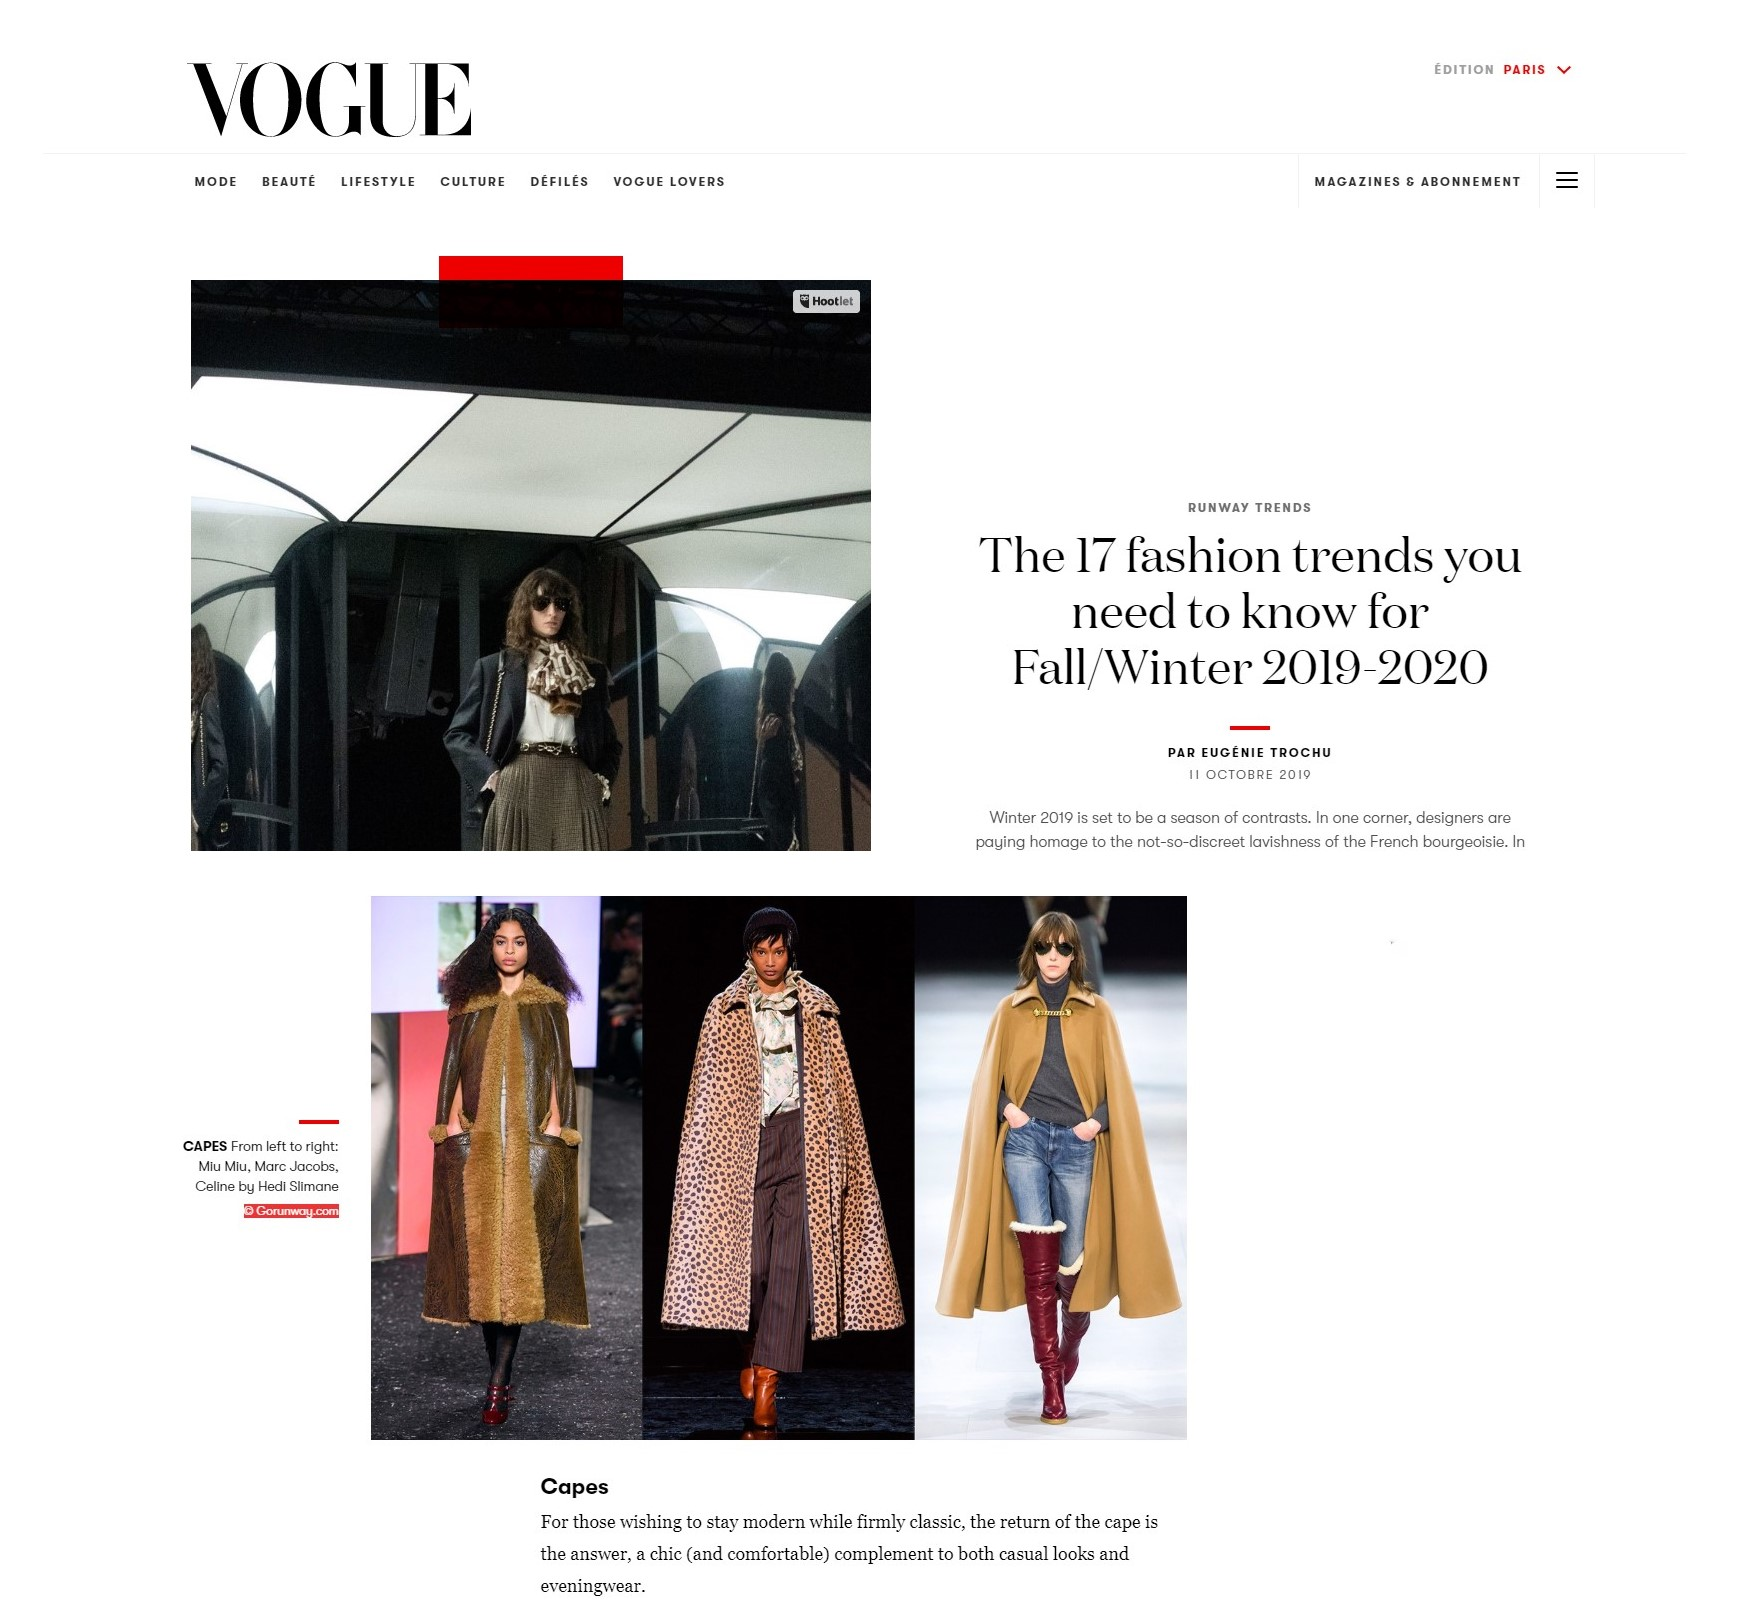 https://www.vogue.fr/fashion/article/the-17-fashion-trends-you-need-to-know-for-fallwinter-2019-2020